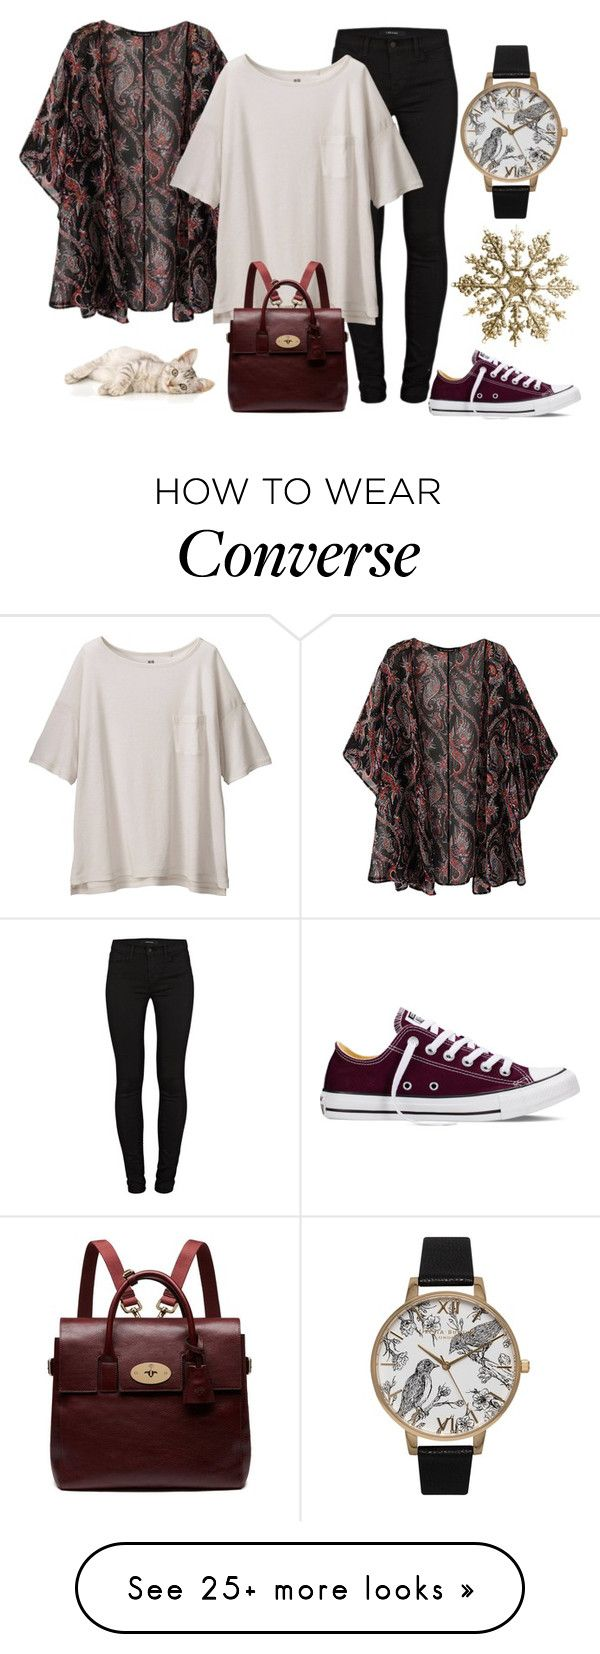 """Ashley"" by didiiidia on Polyvore featuring Olivia Burton, J Brand, Uniqlo, Converse, Mulberry, women's clothing, women's fashion, women, female and woman"